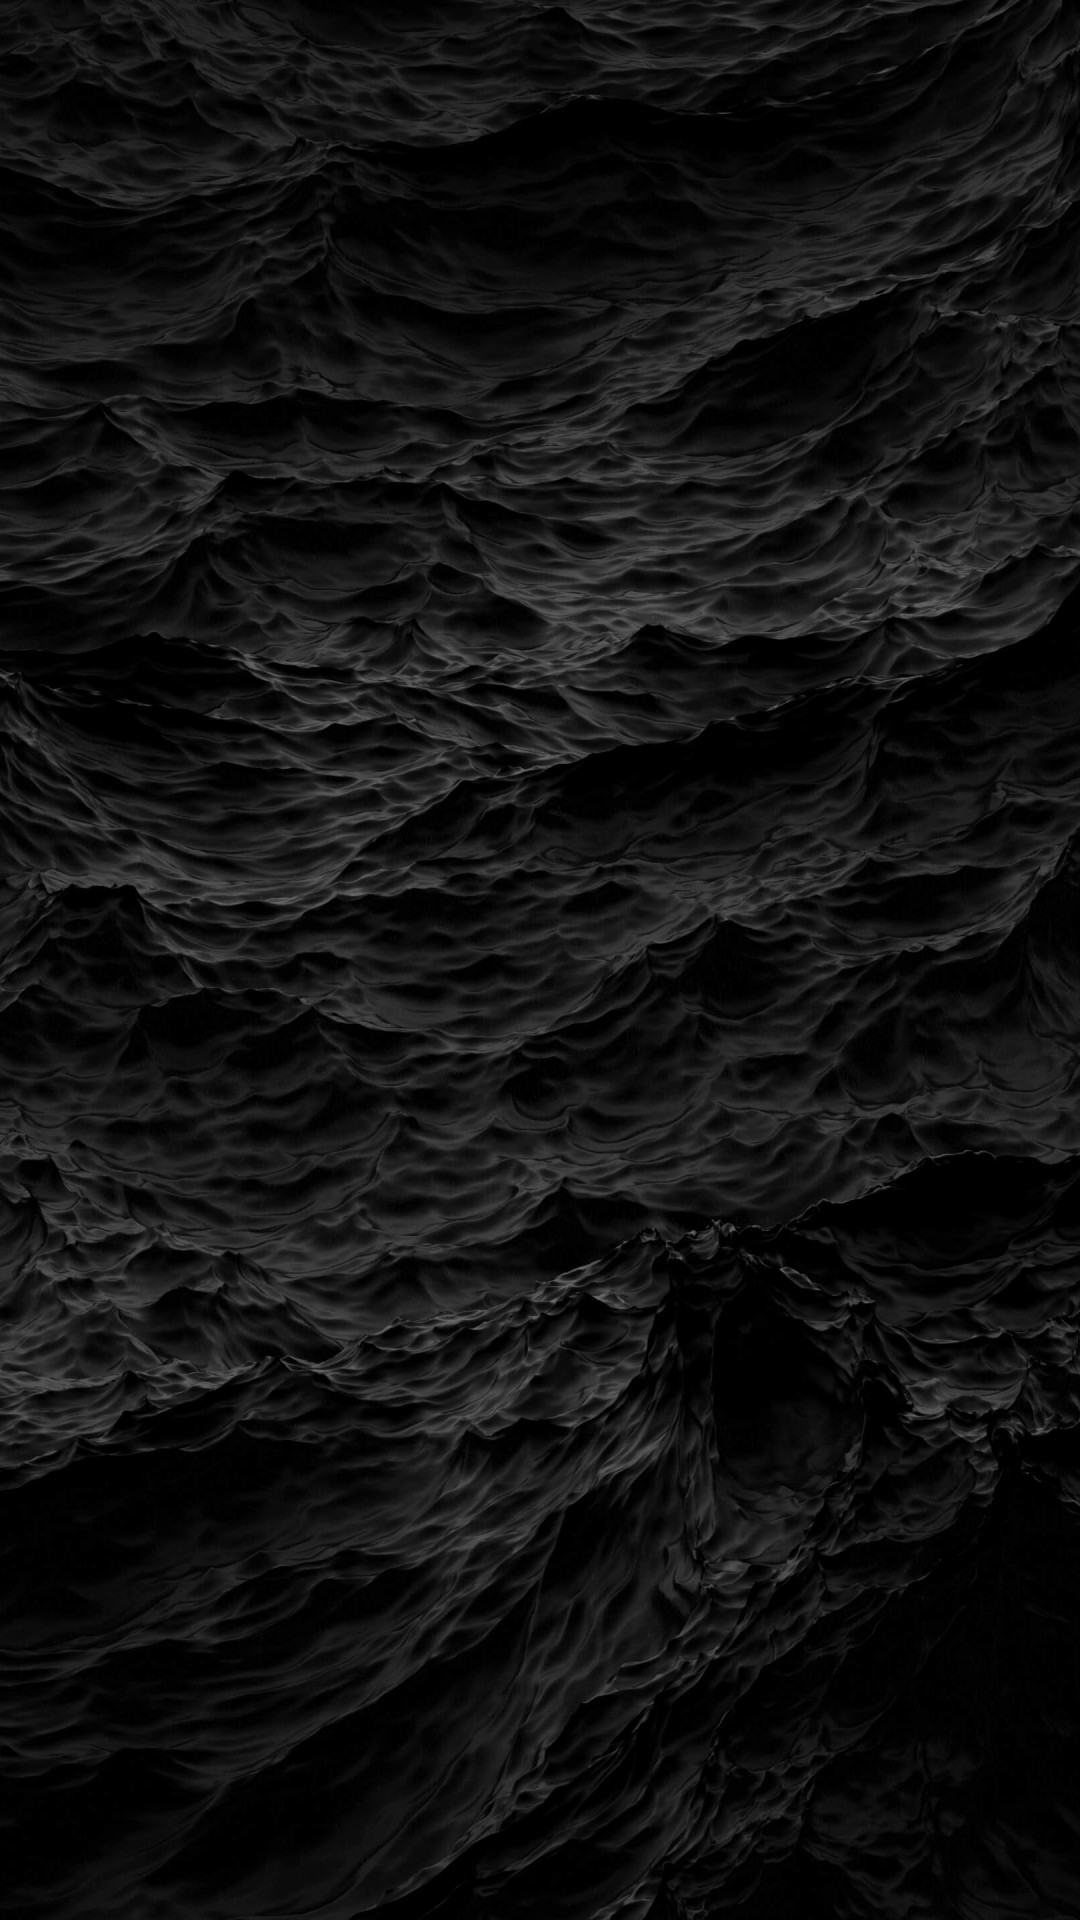 Black Waves Wallpaper for HTC One